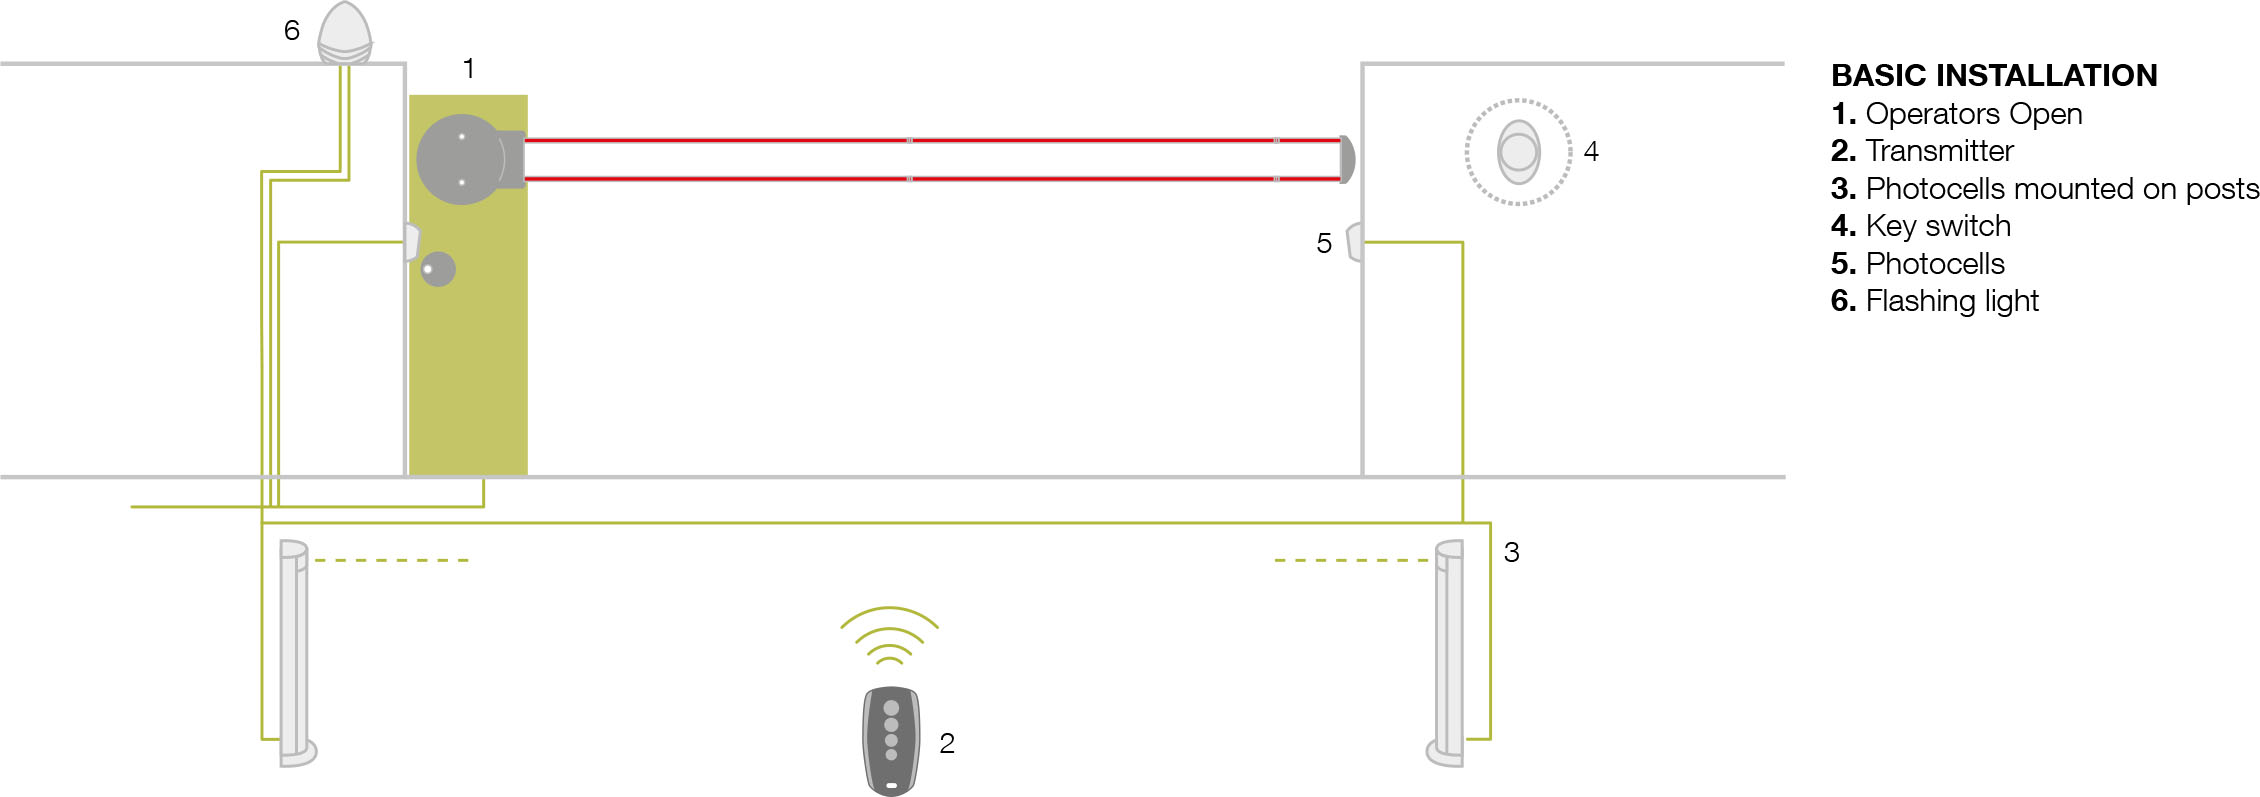 Italy Barrier 4 mtr and 6 mtr long, Card Access Control Barrier, Remote Control barrier, Long Range Reader Access Control Barrier